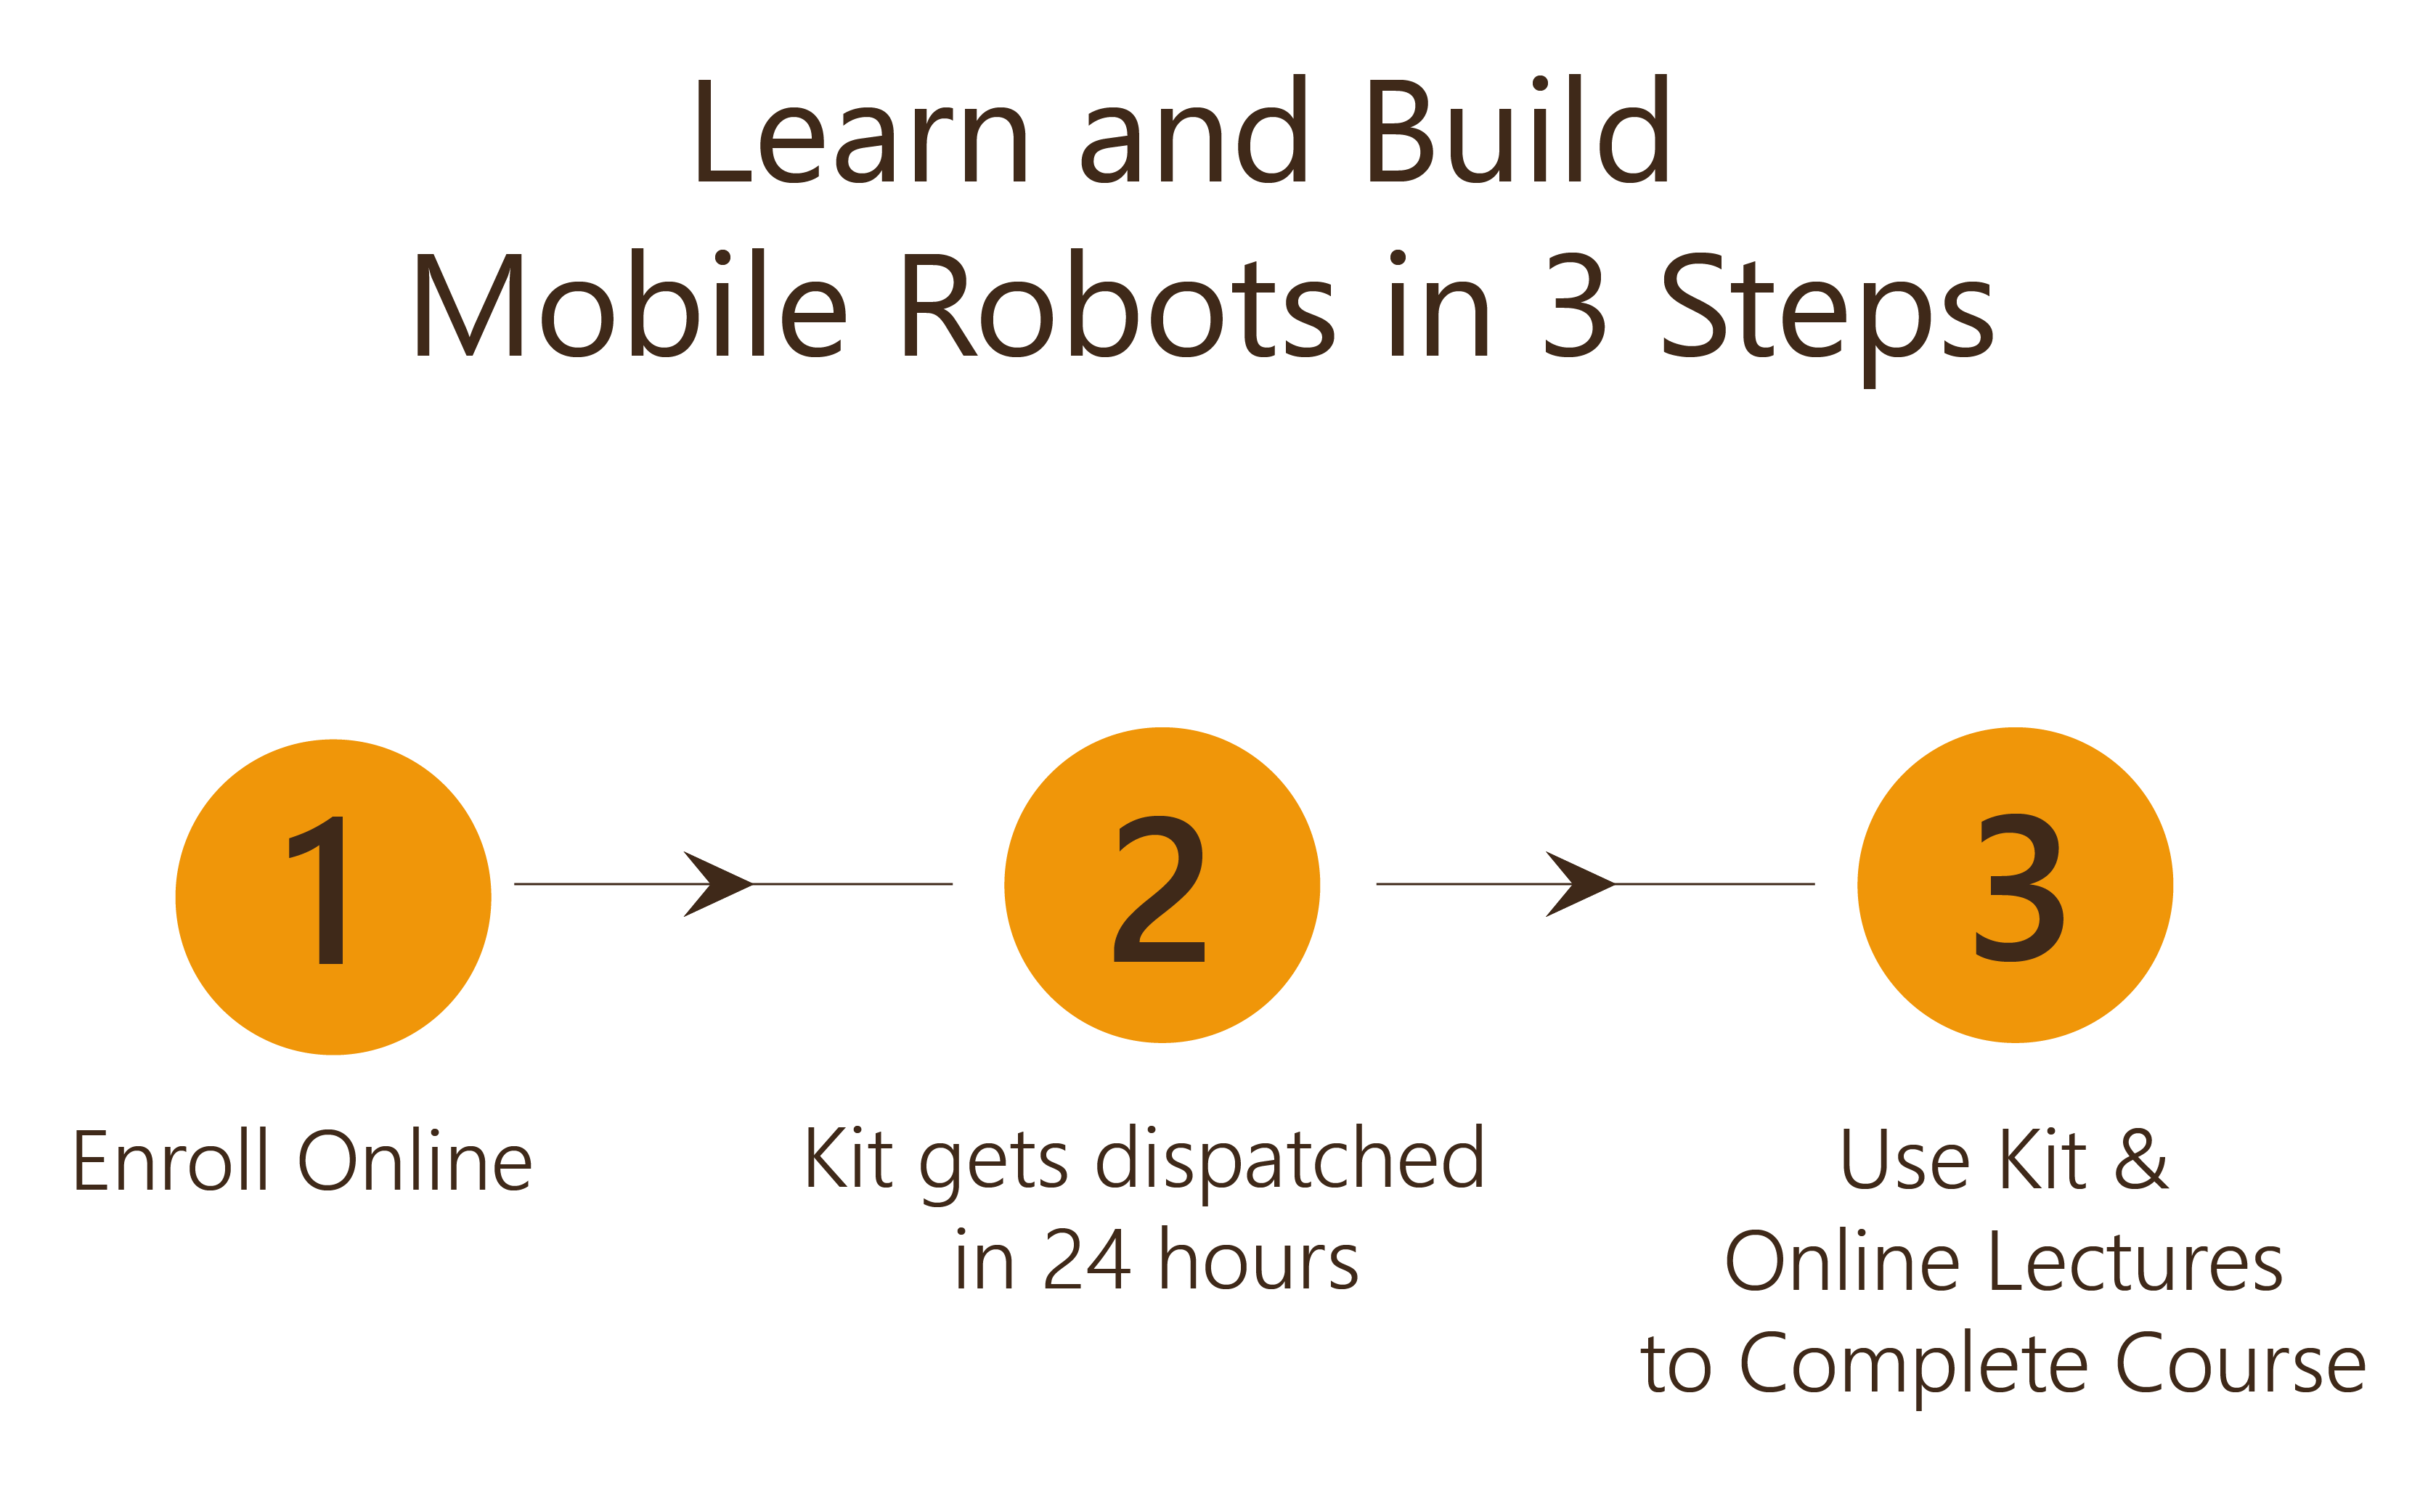 Learn and Build Mobile Robots in 3 Steps